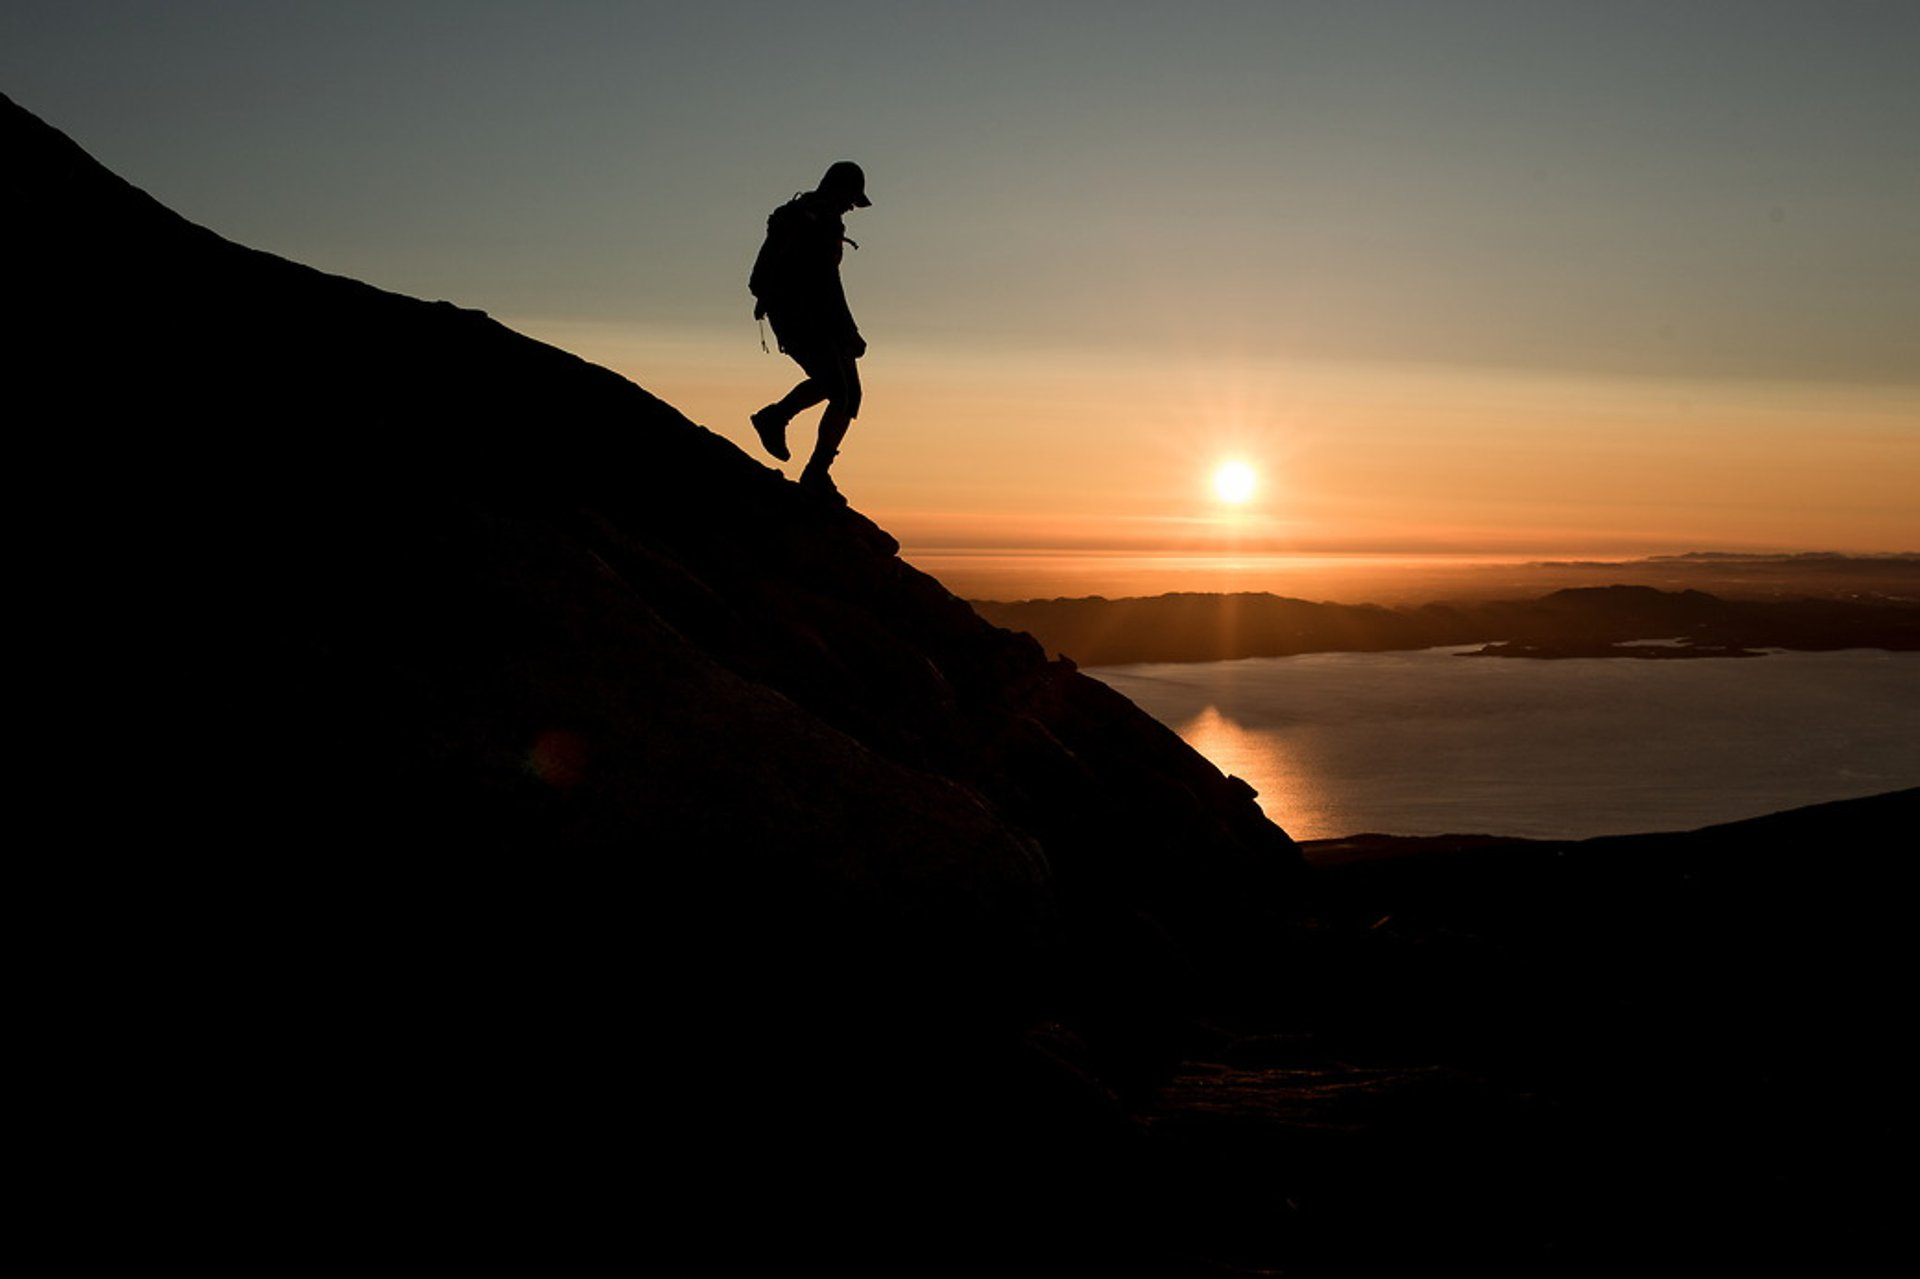 A hiker descending the mountain Ukkusissaq - Store Malene in the midnight sun outside Nuuk in Greenland 2019